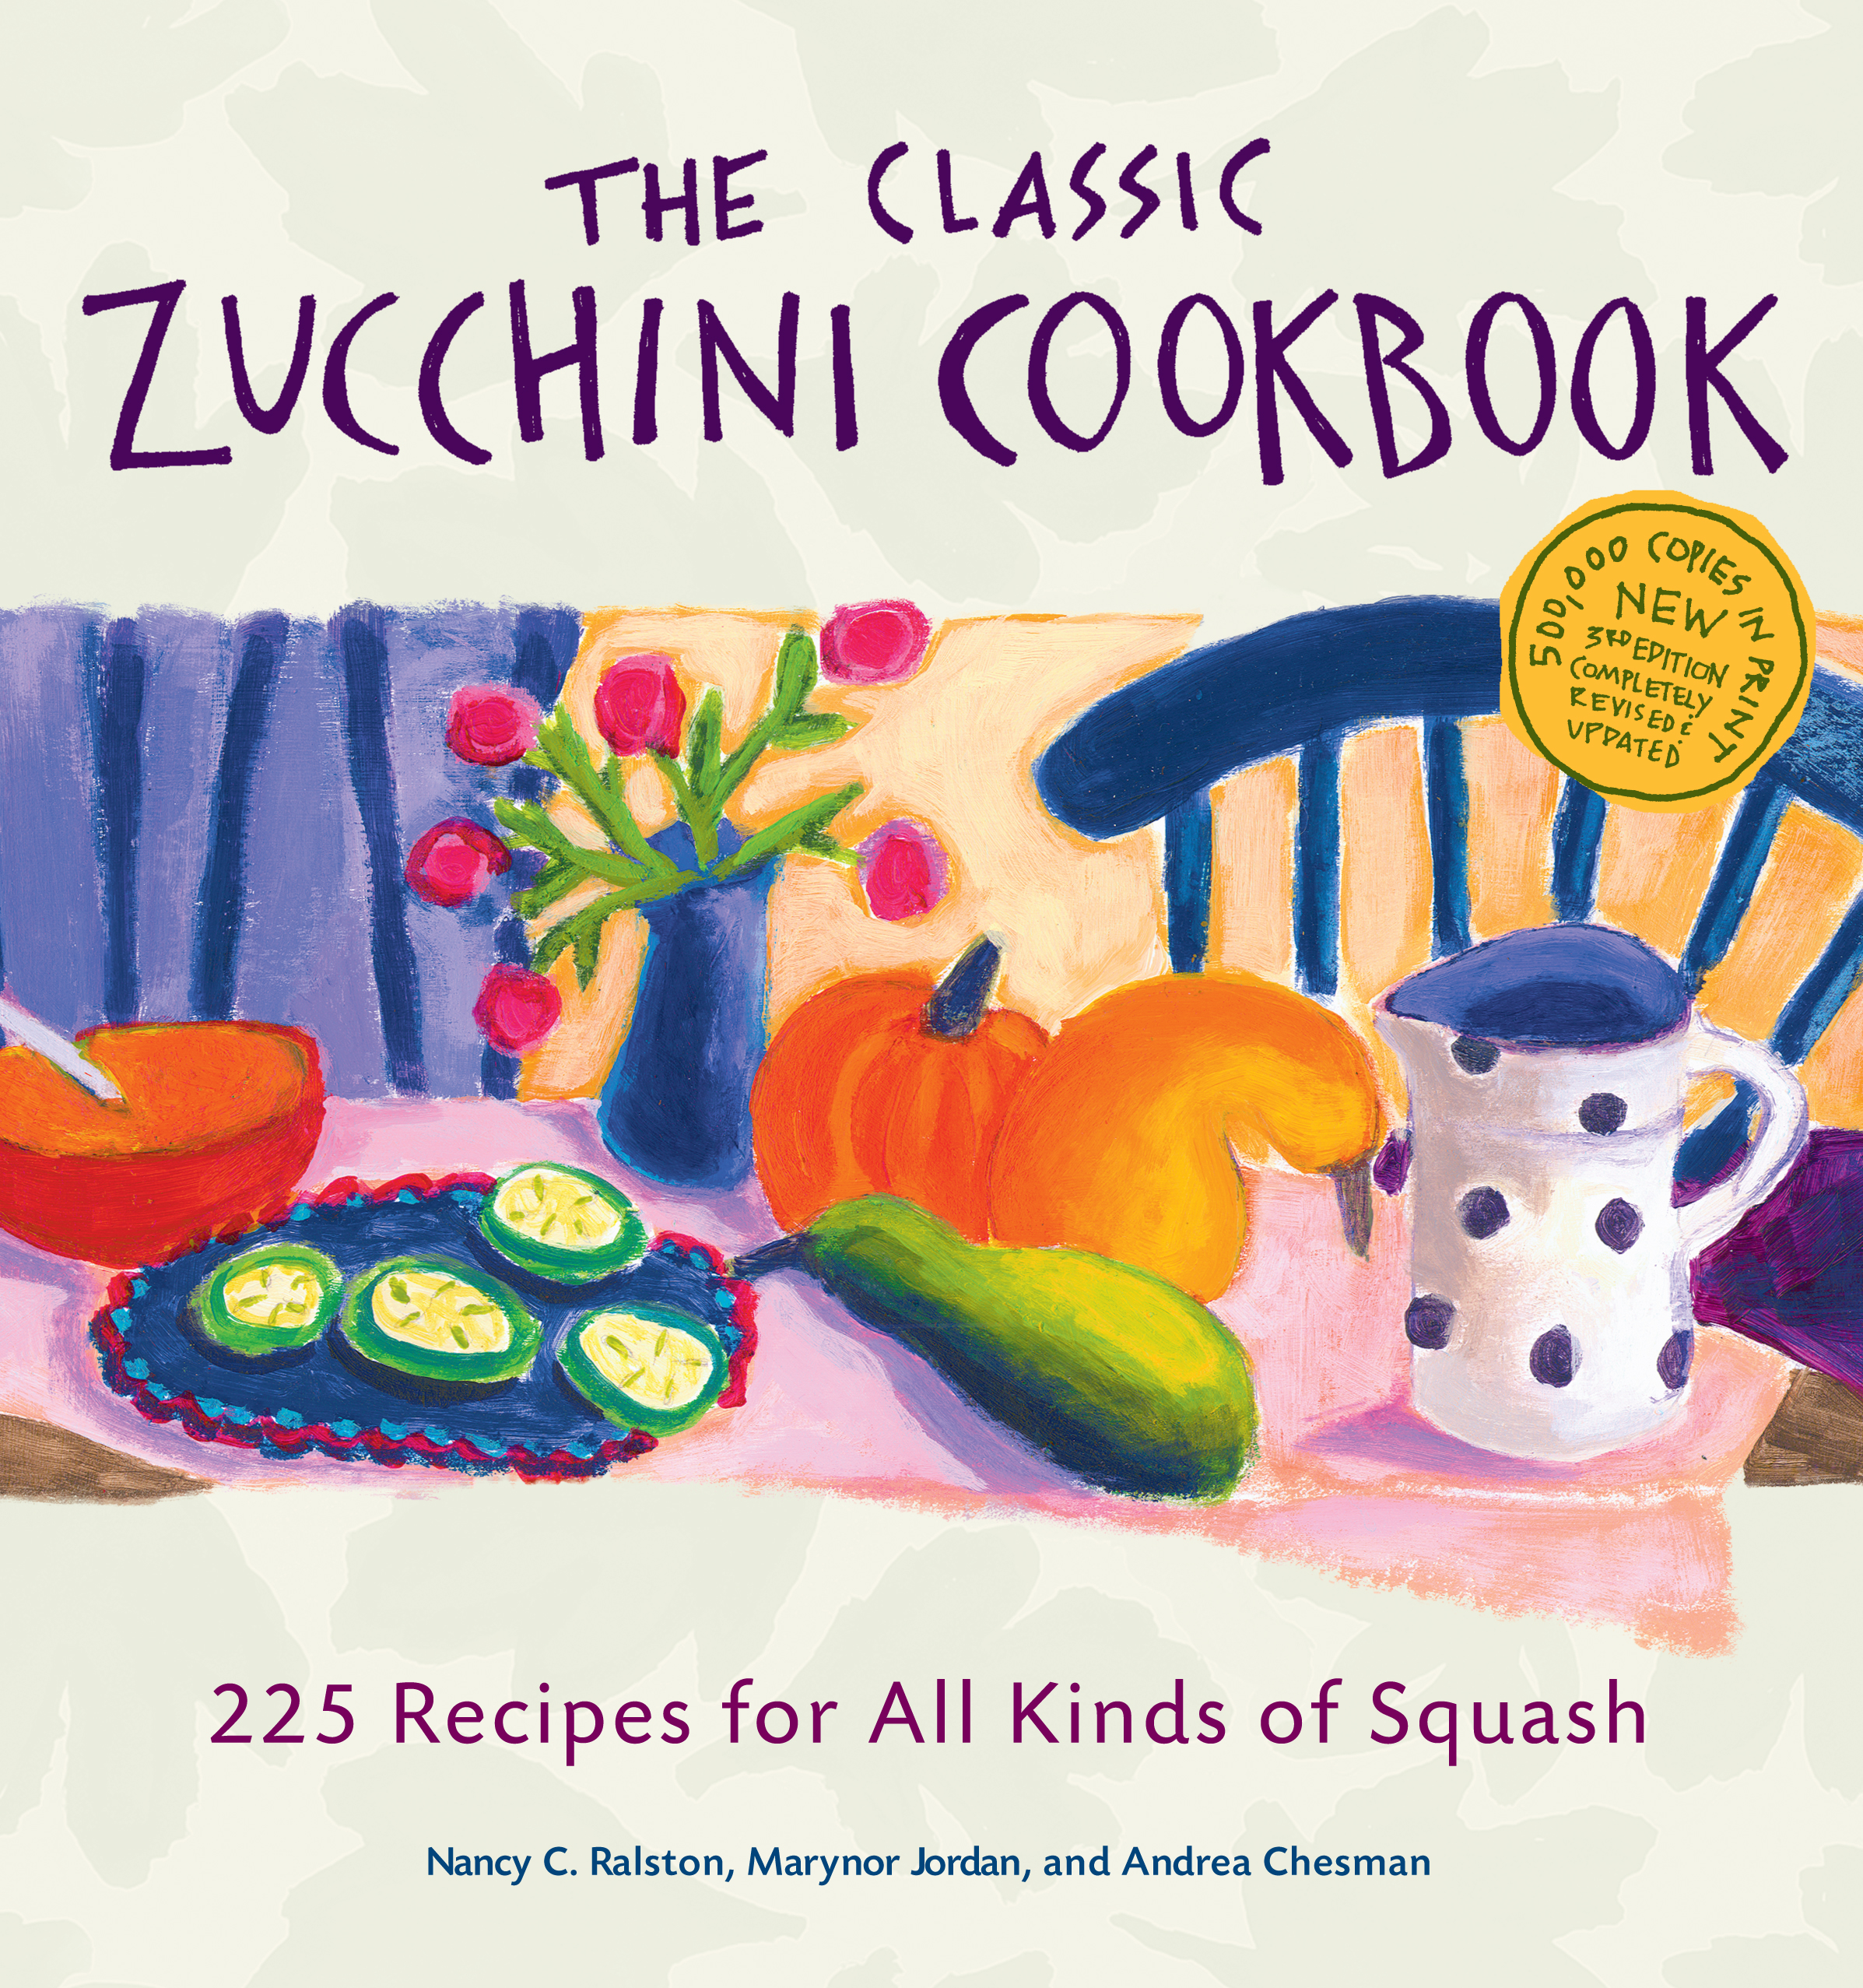 The Classic Zucchini Cookbook 225 Recipes for All Kinds of Squash - Nancy C. Ralston